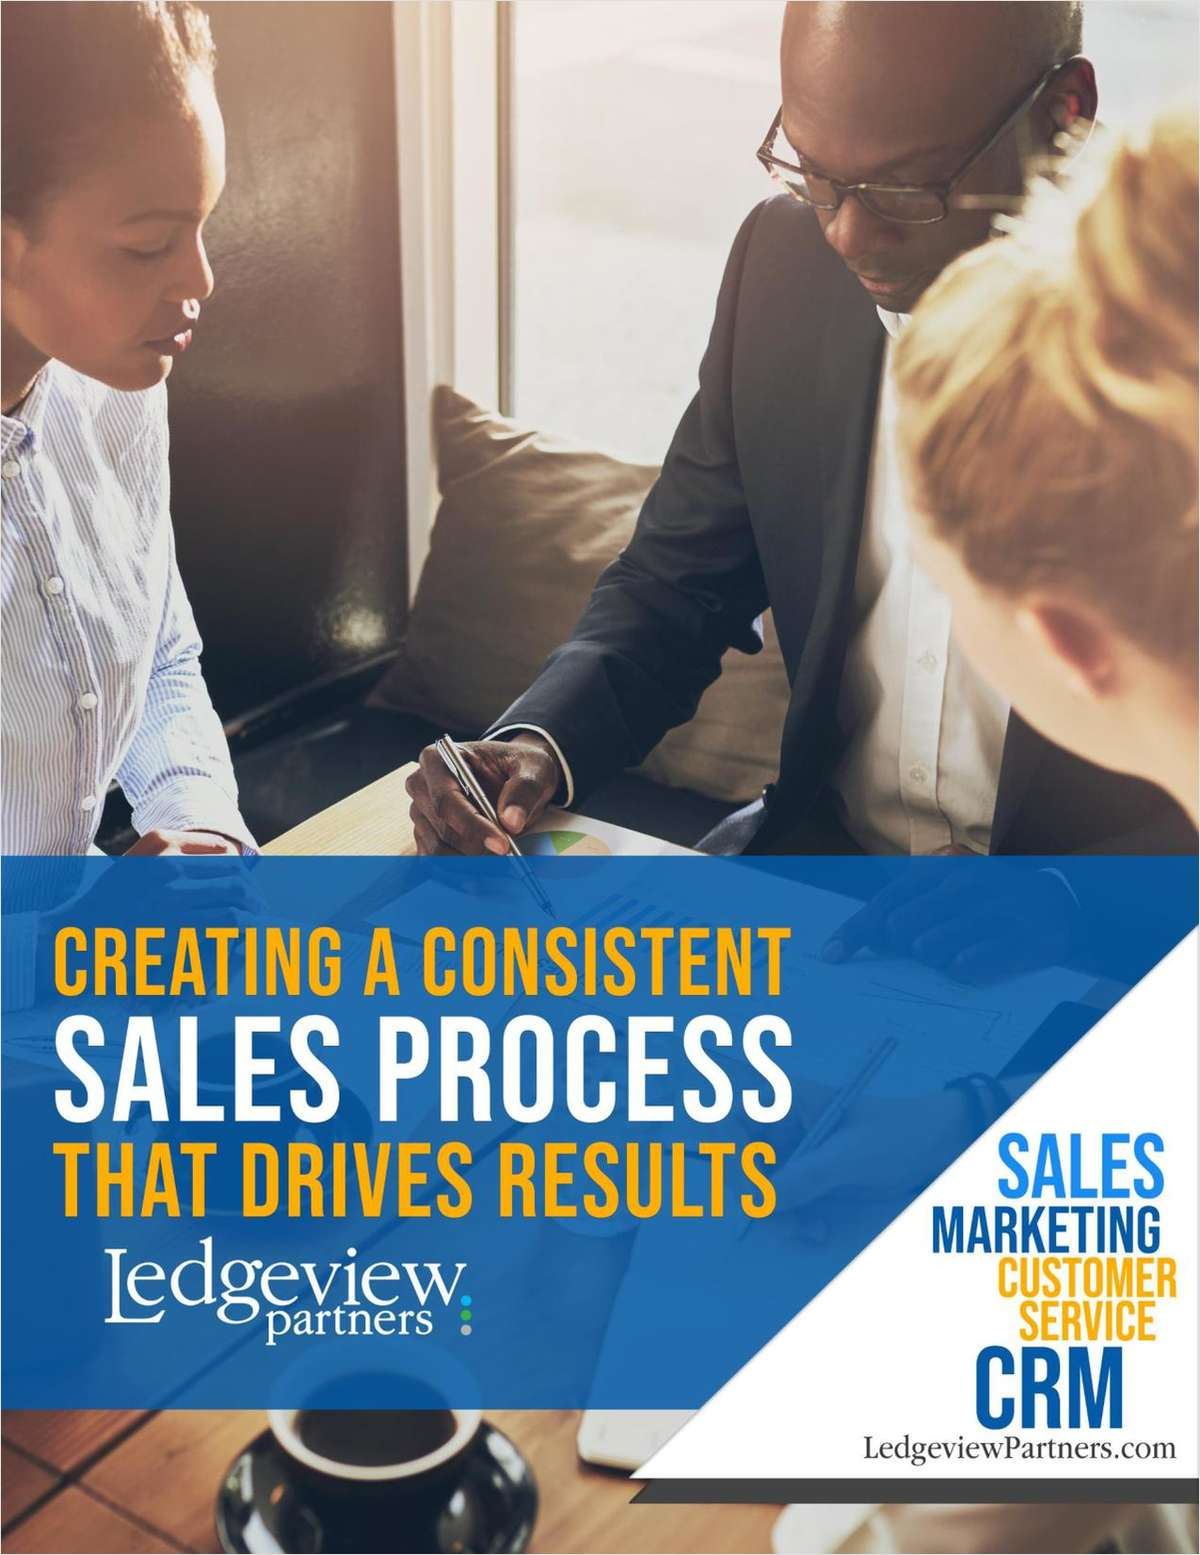 Creating a Consistent Sales Process that Drives Results